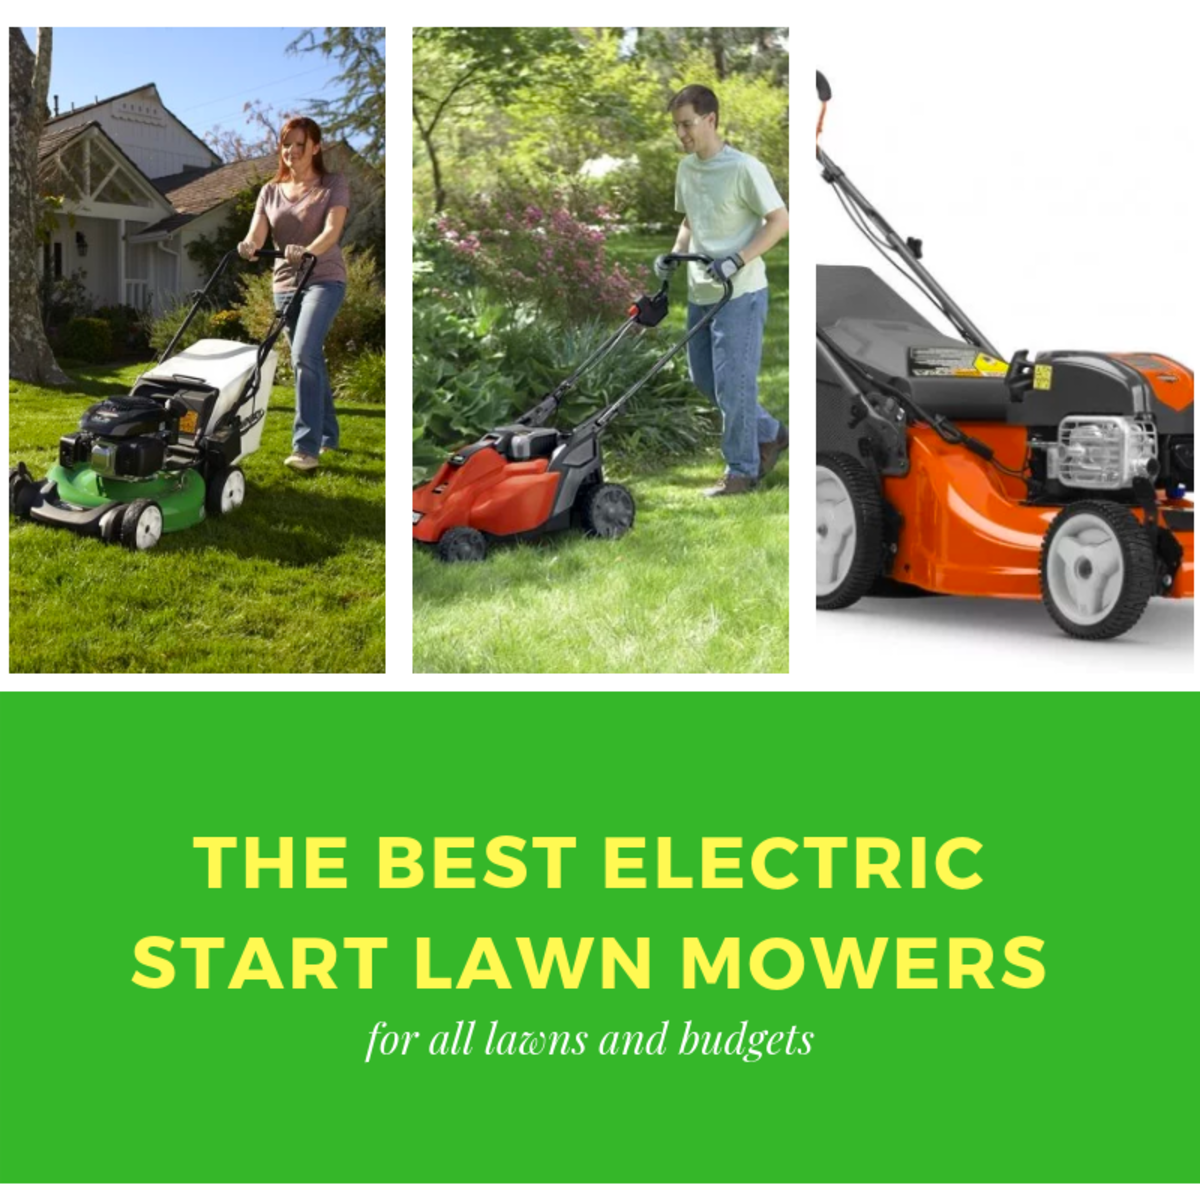 Top 3 Best Electric Start Lawn Mowers